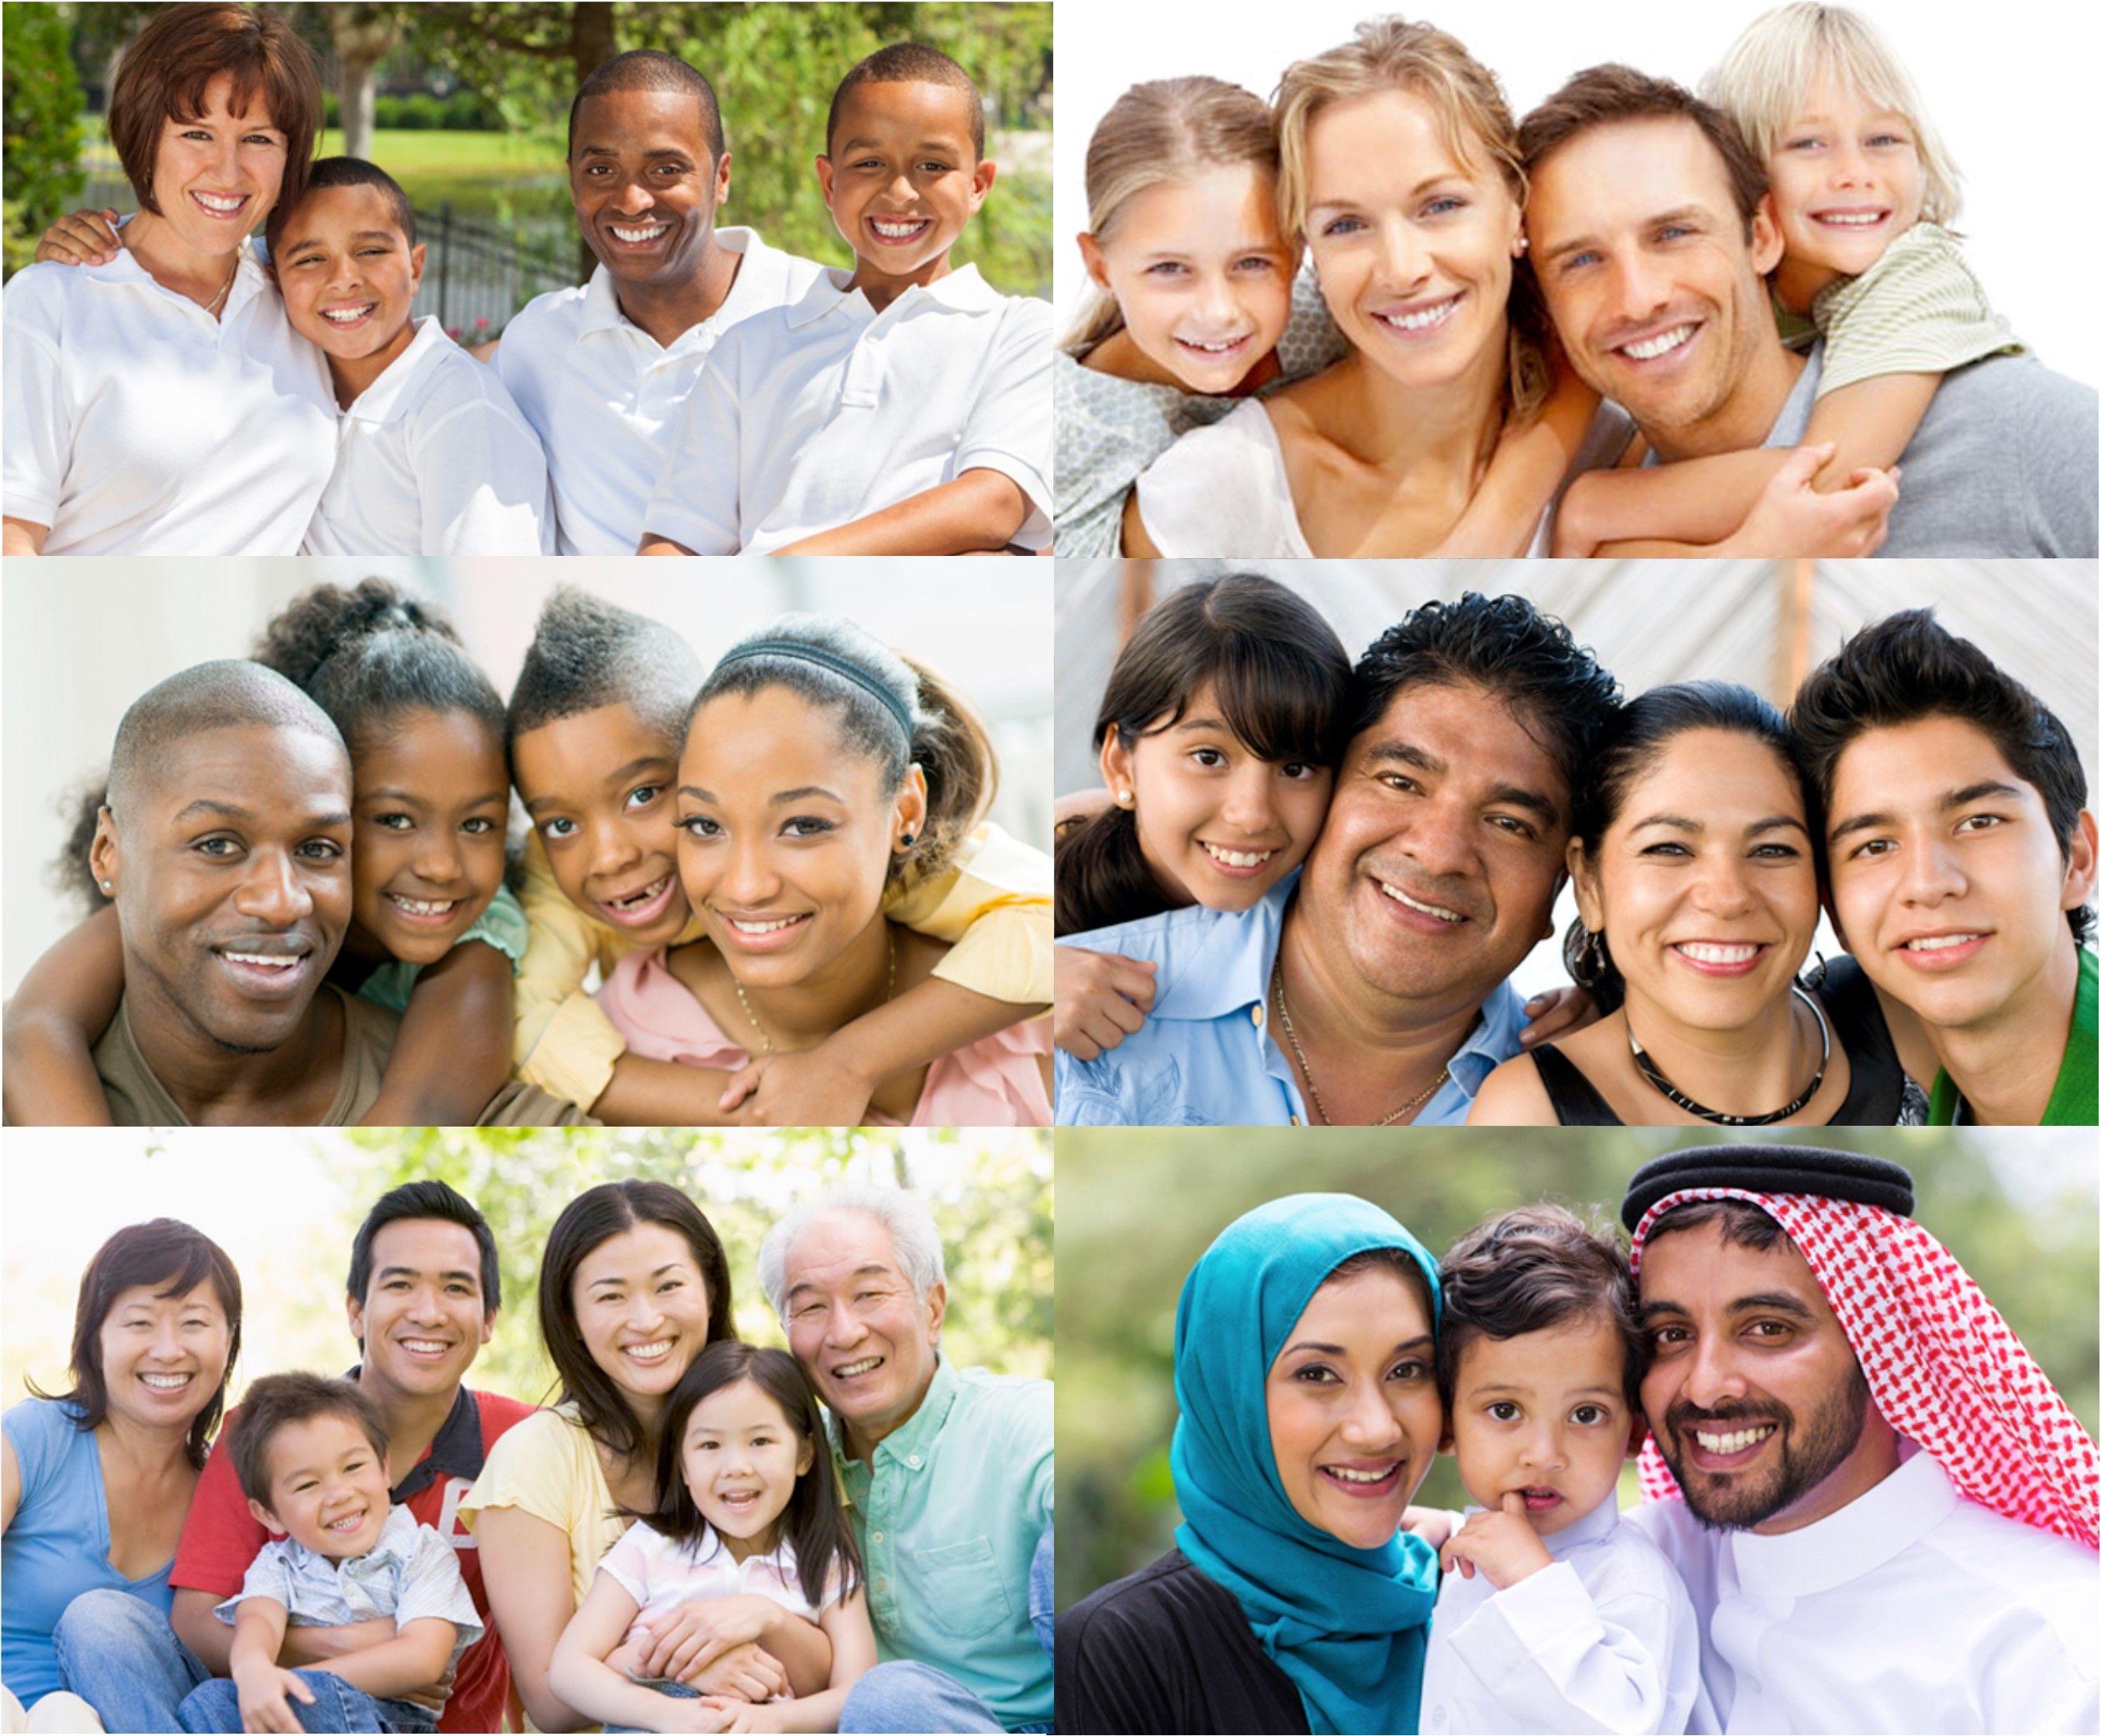 Race and family image showing different types of families.